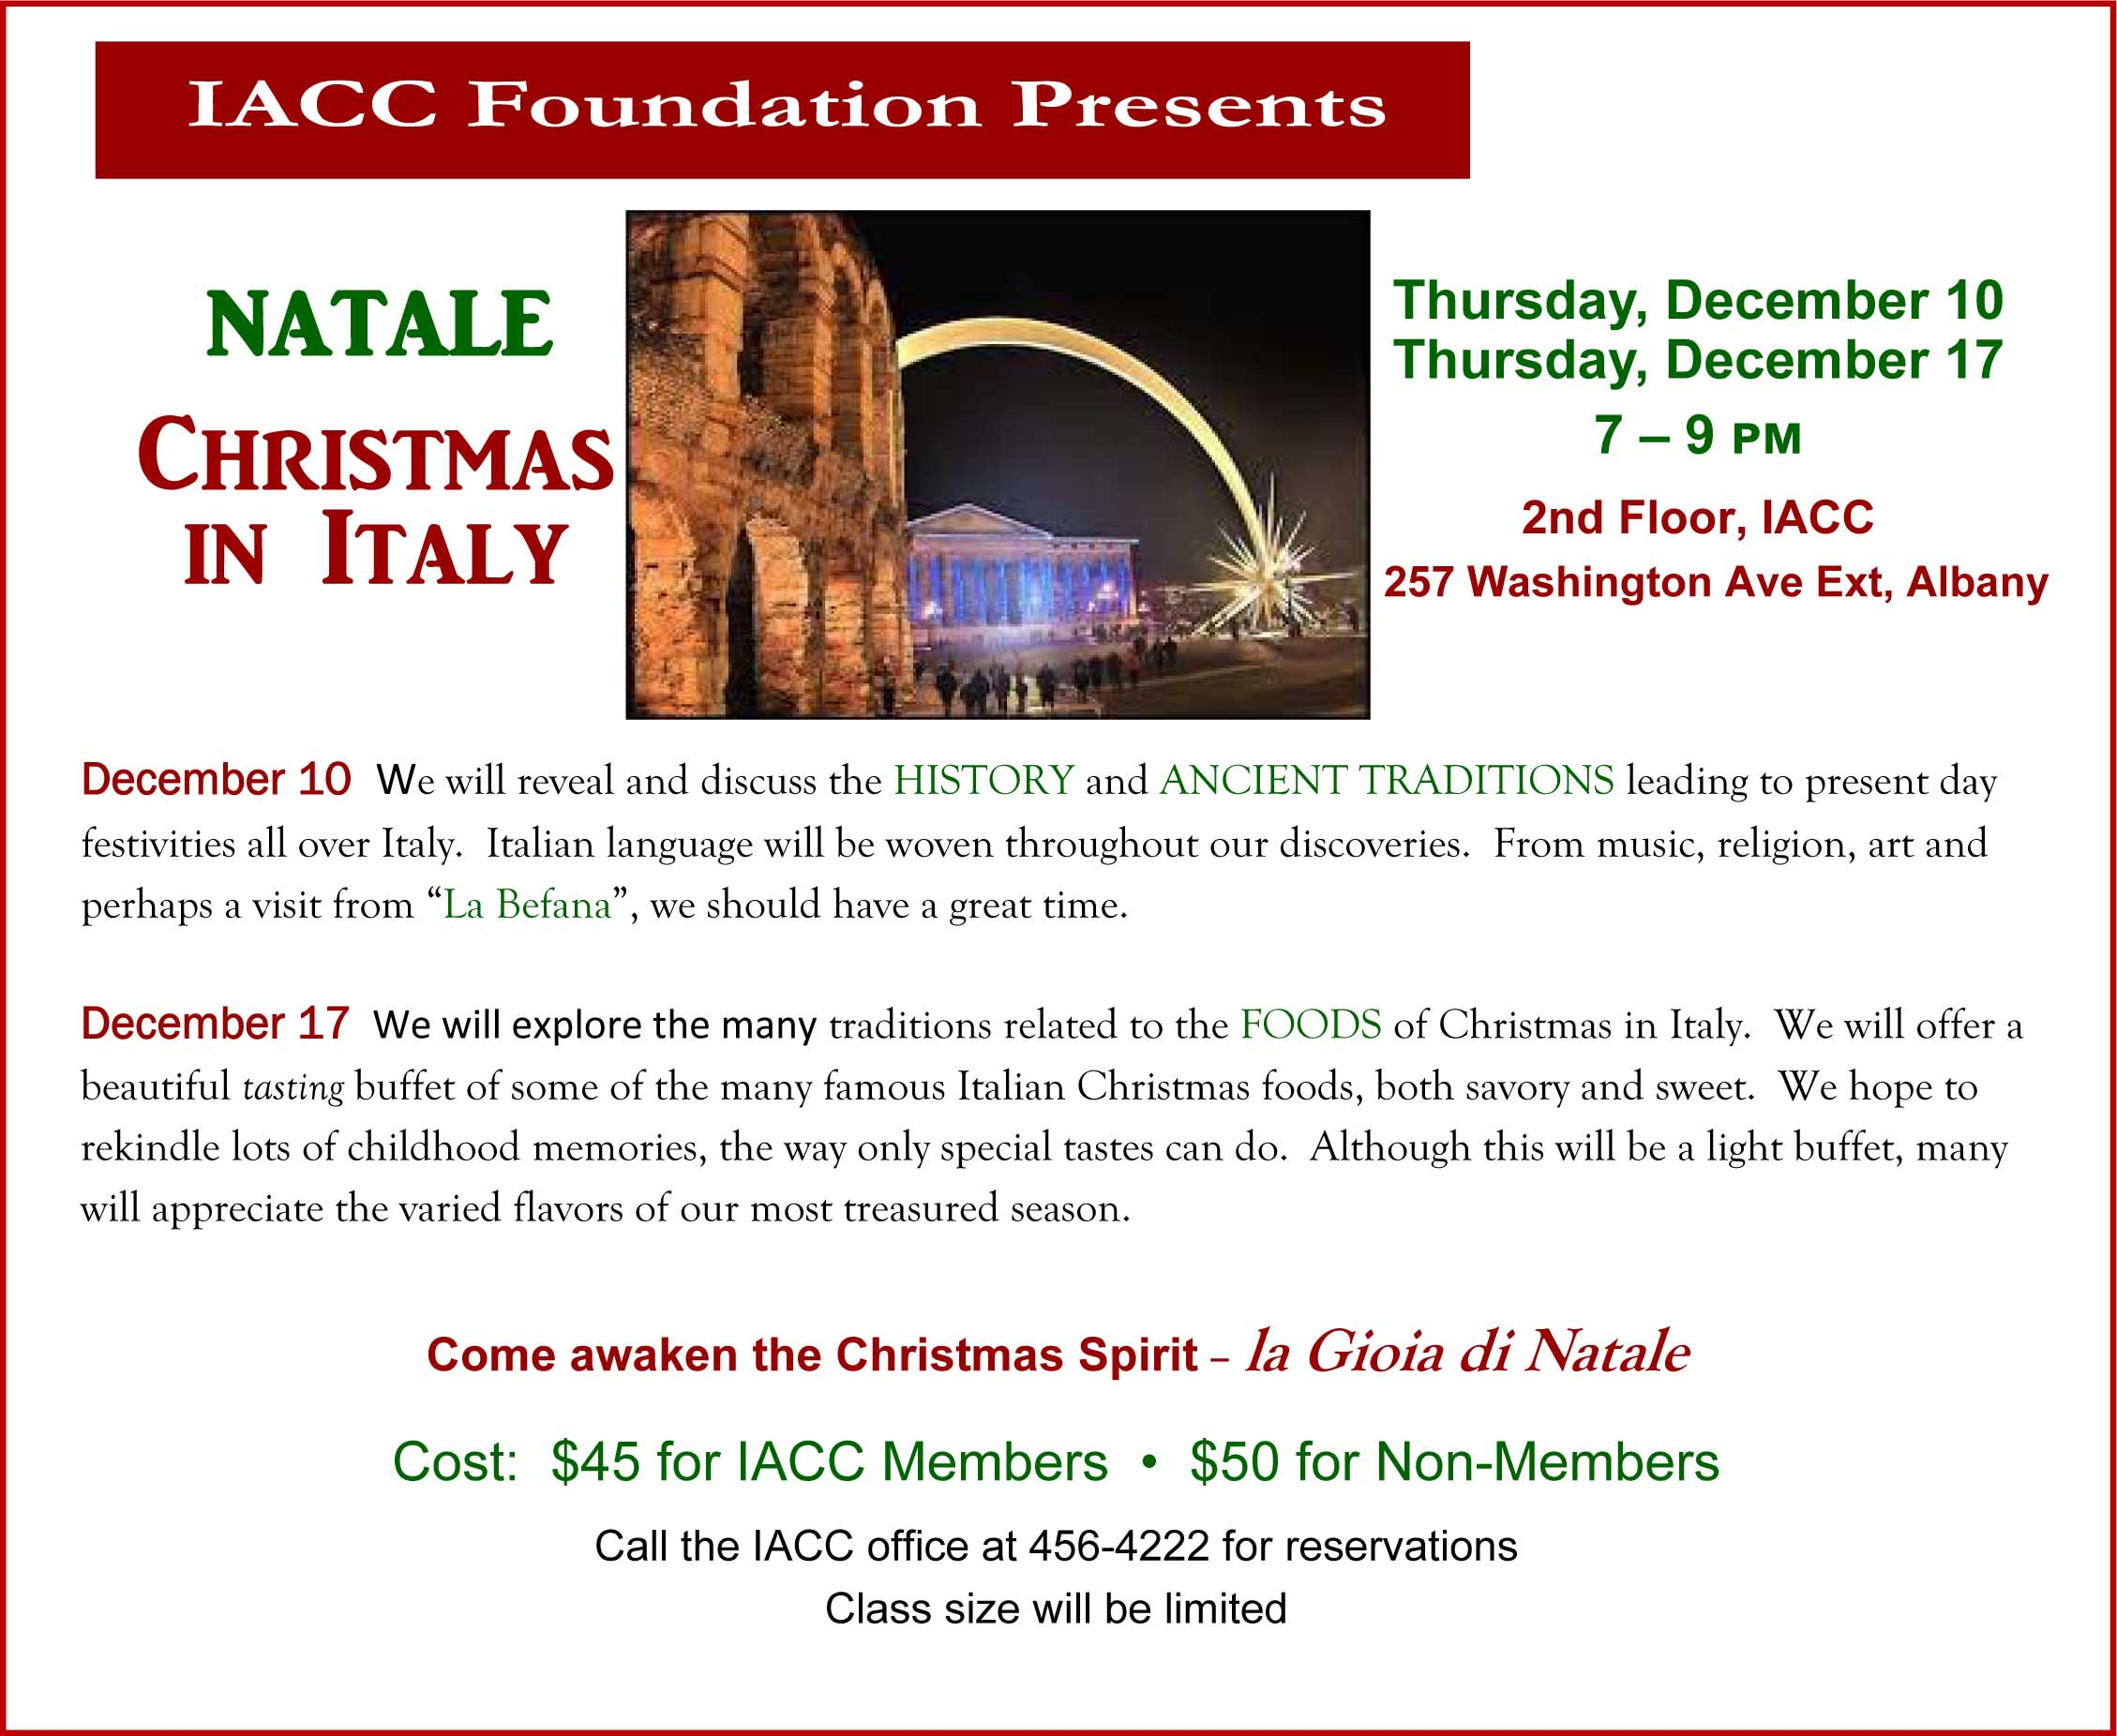 Natale: Christmas In Italy